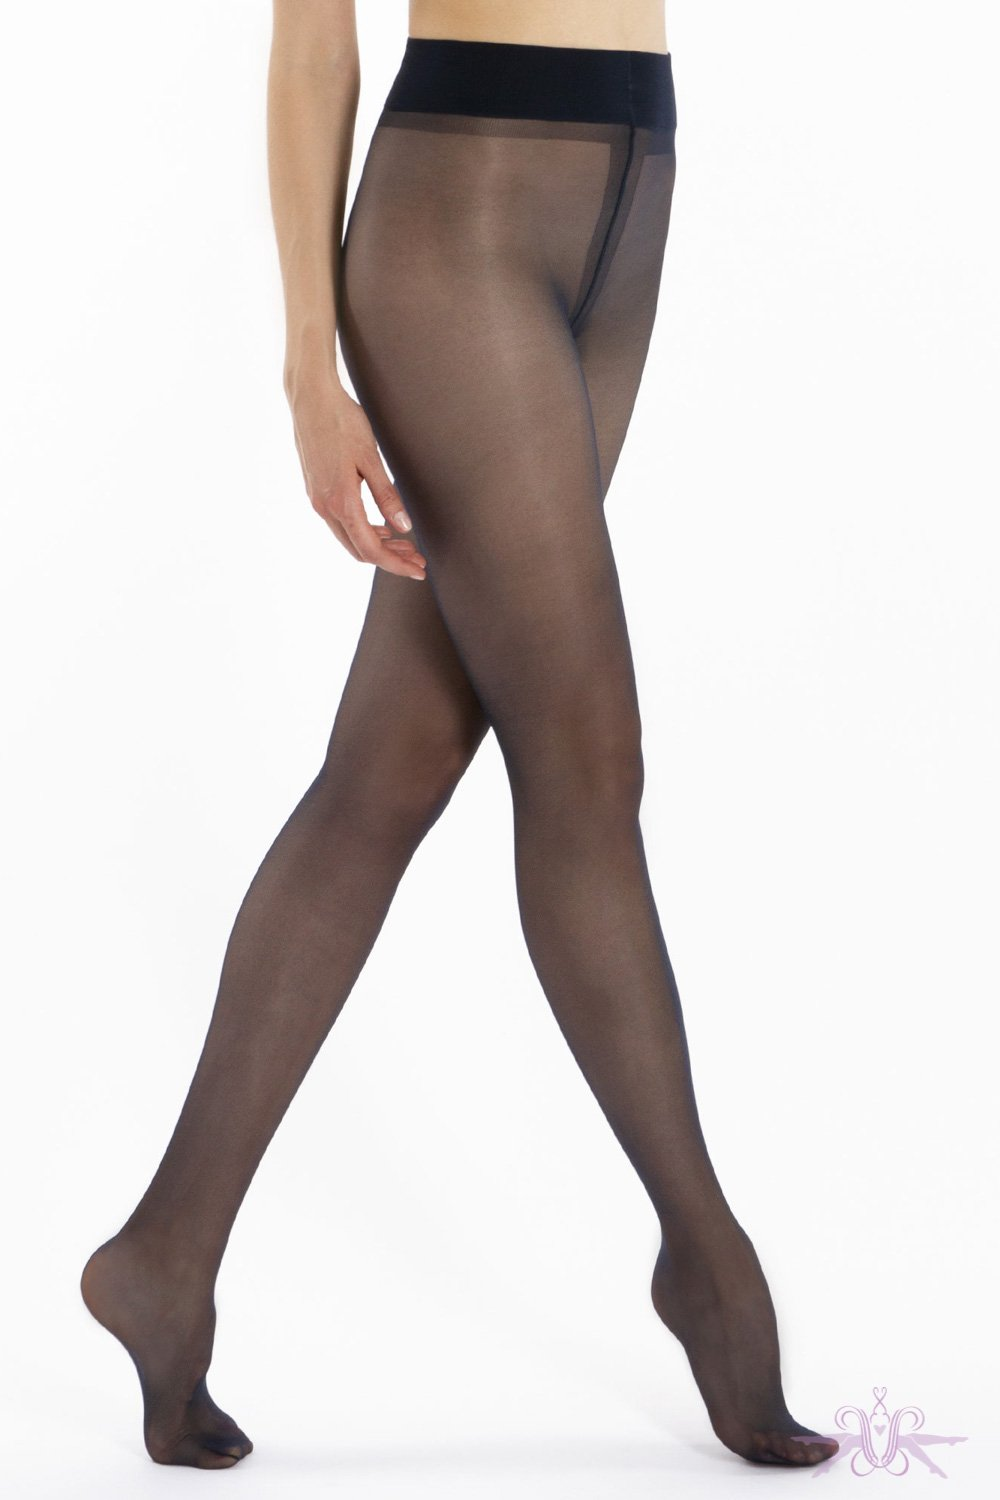 Le Bourget Retro Contrast Welt Stockings - Mayfair Stockings